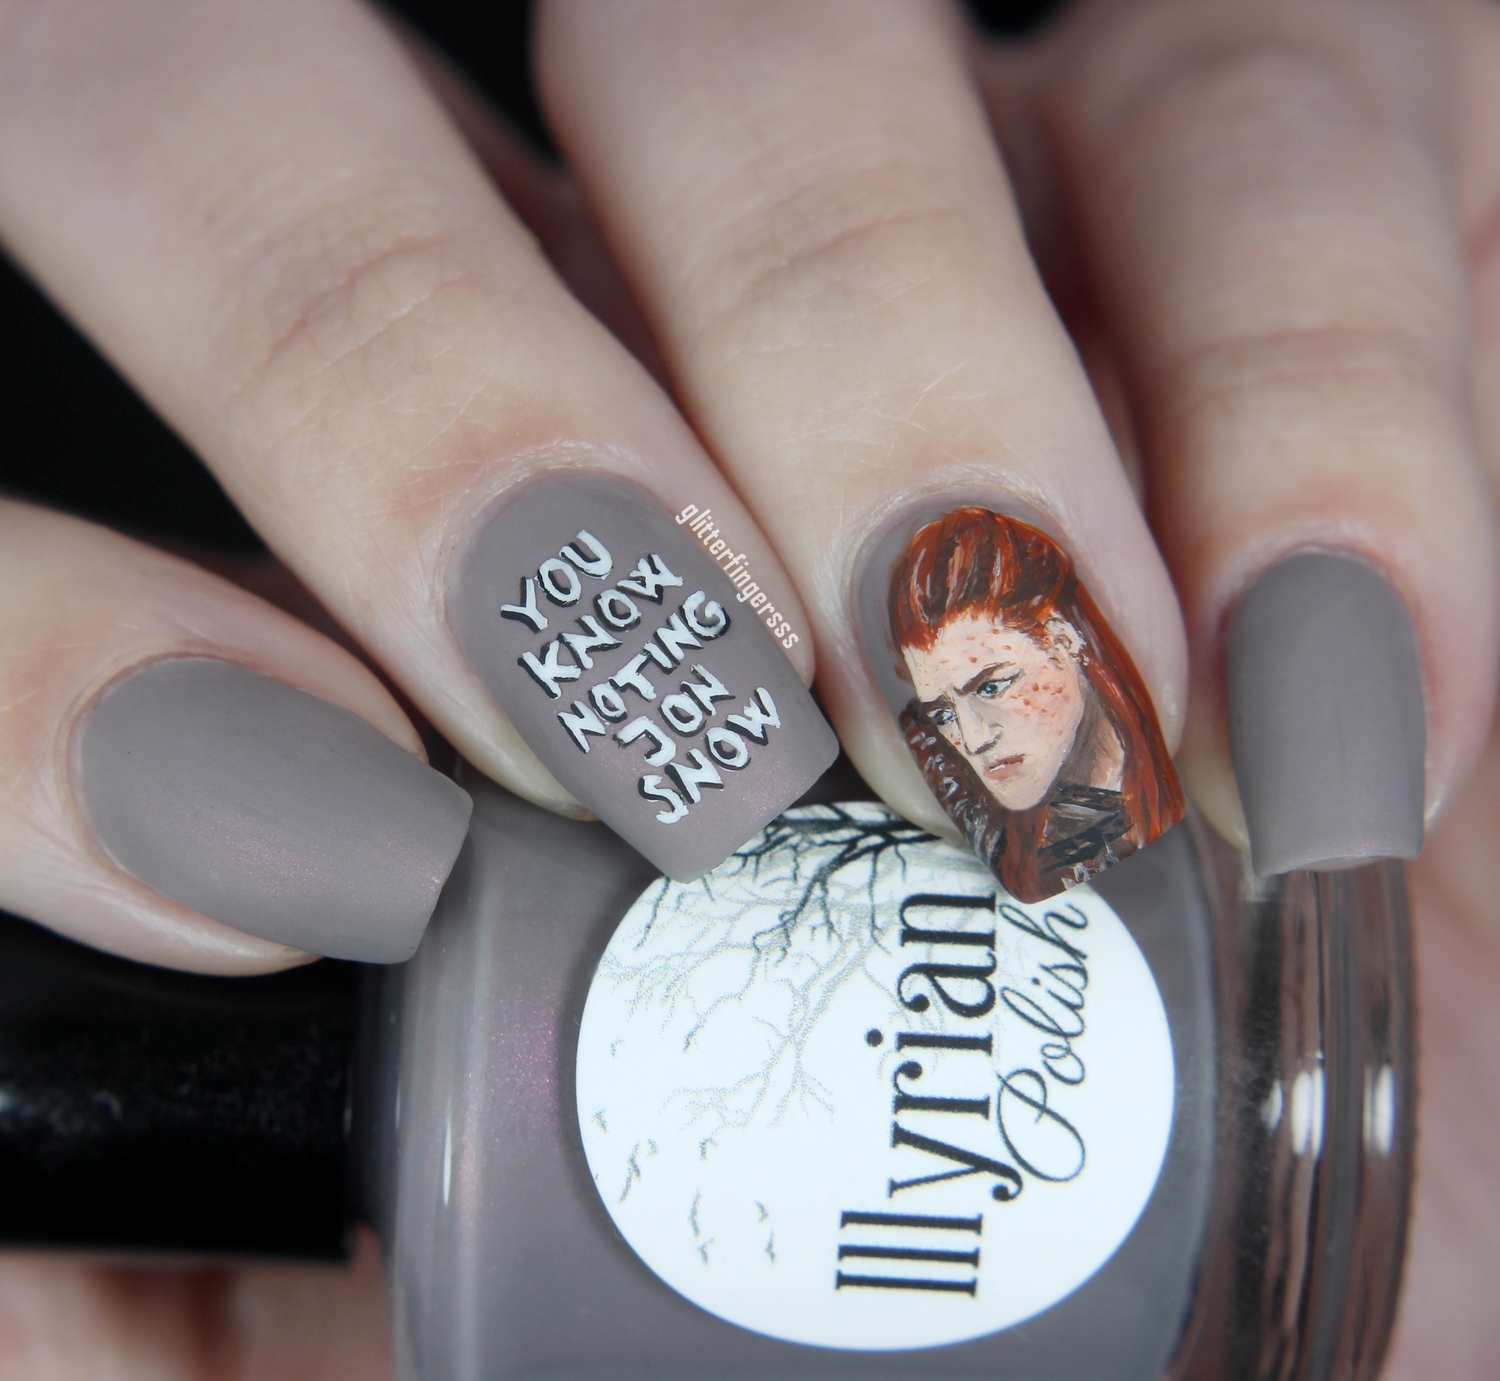 You Know Nothing Jon Snow Glitterfingersss In English